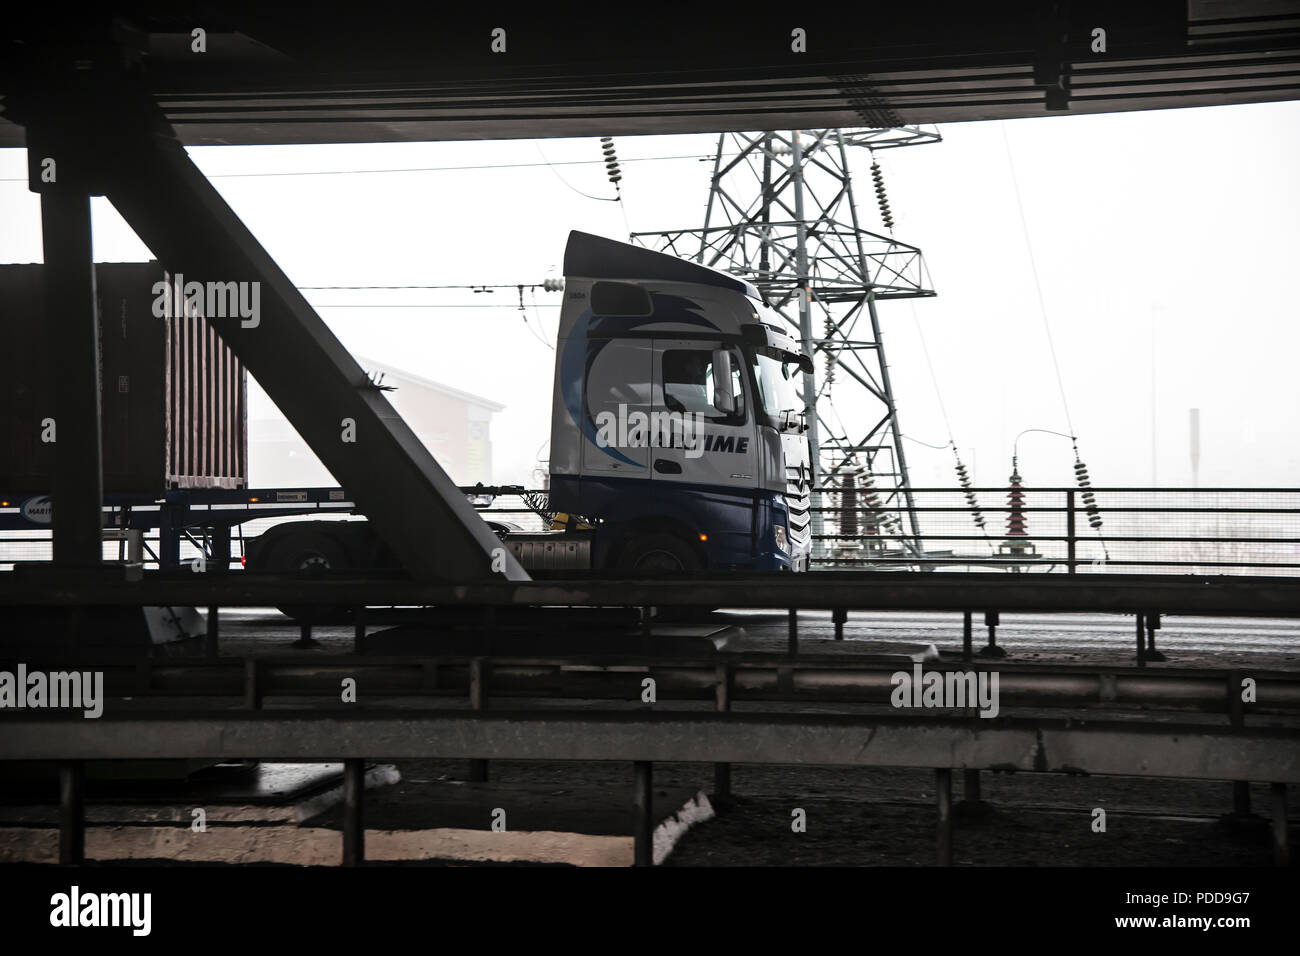 Maritime Transport Mercedes-Benz Actros container truck crosses the lower deck of Tinsley Viaduct, Sheffield. - Stock Image